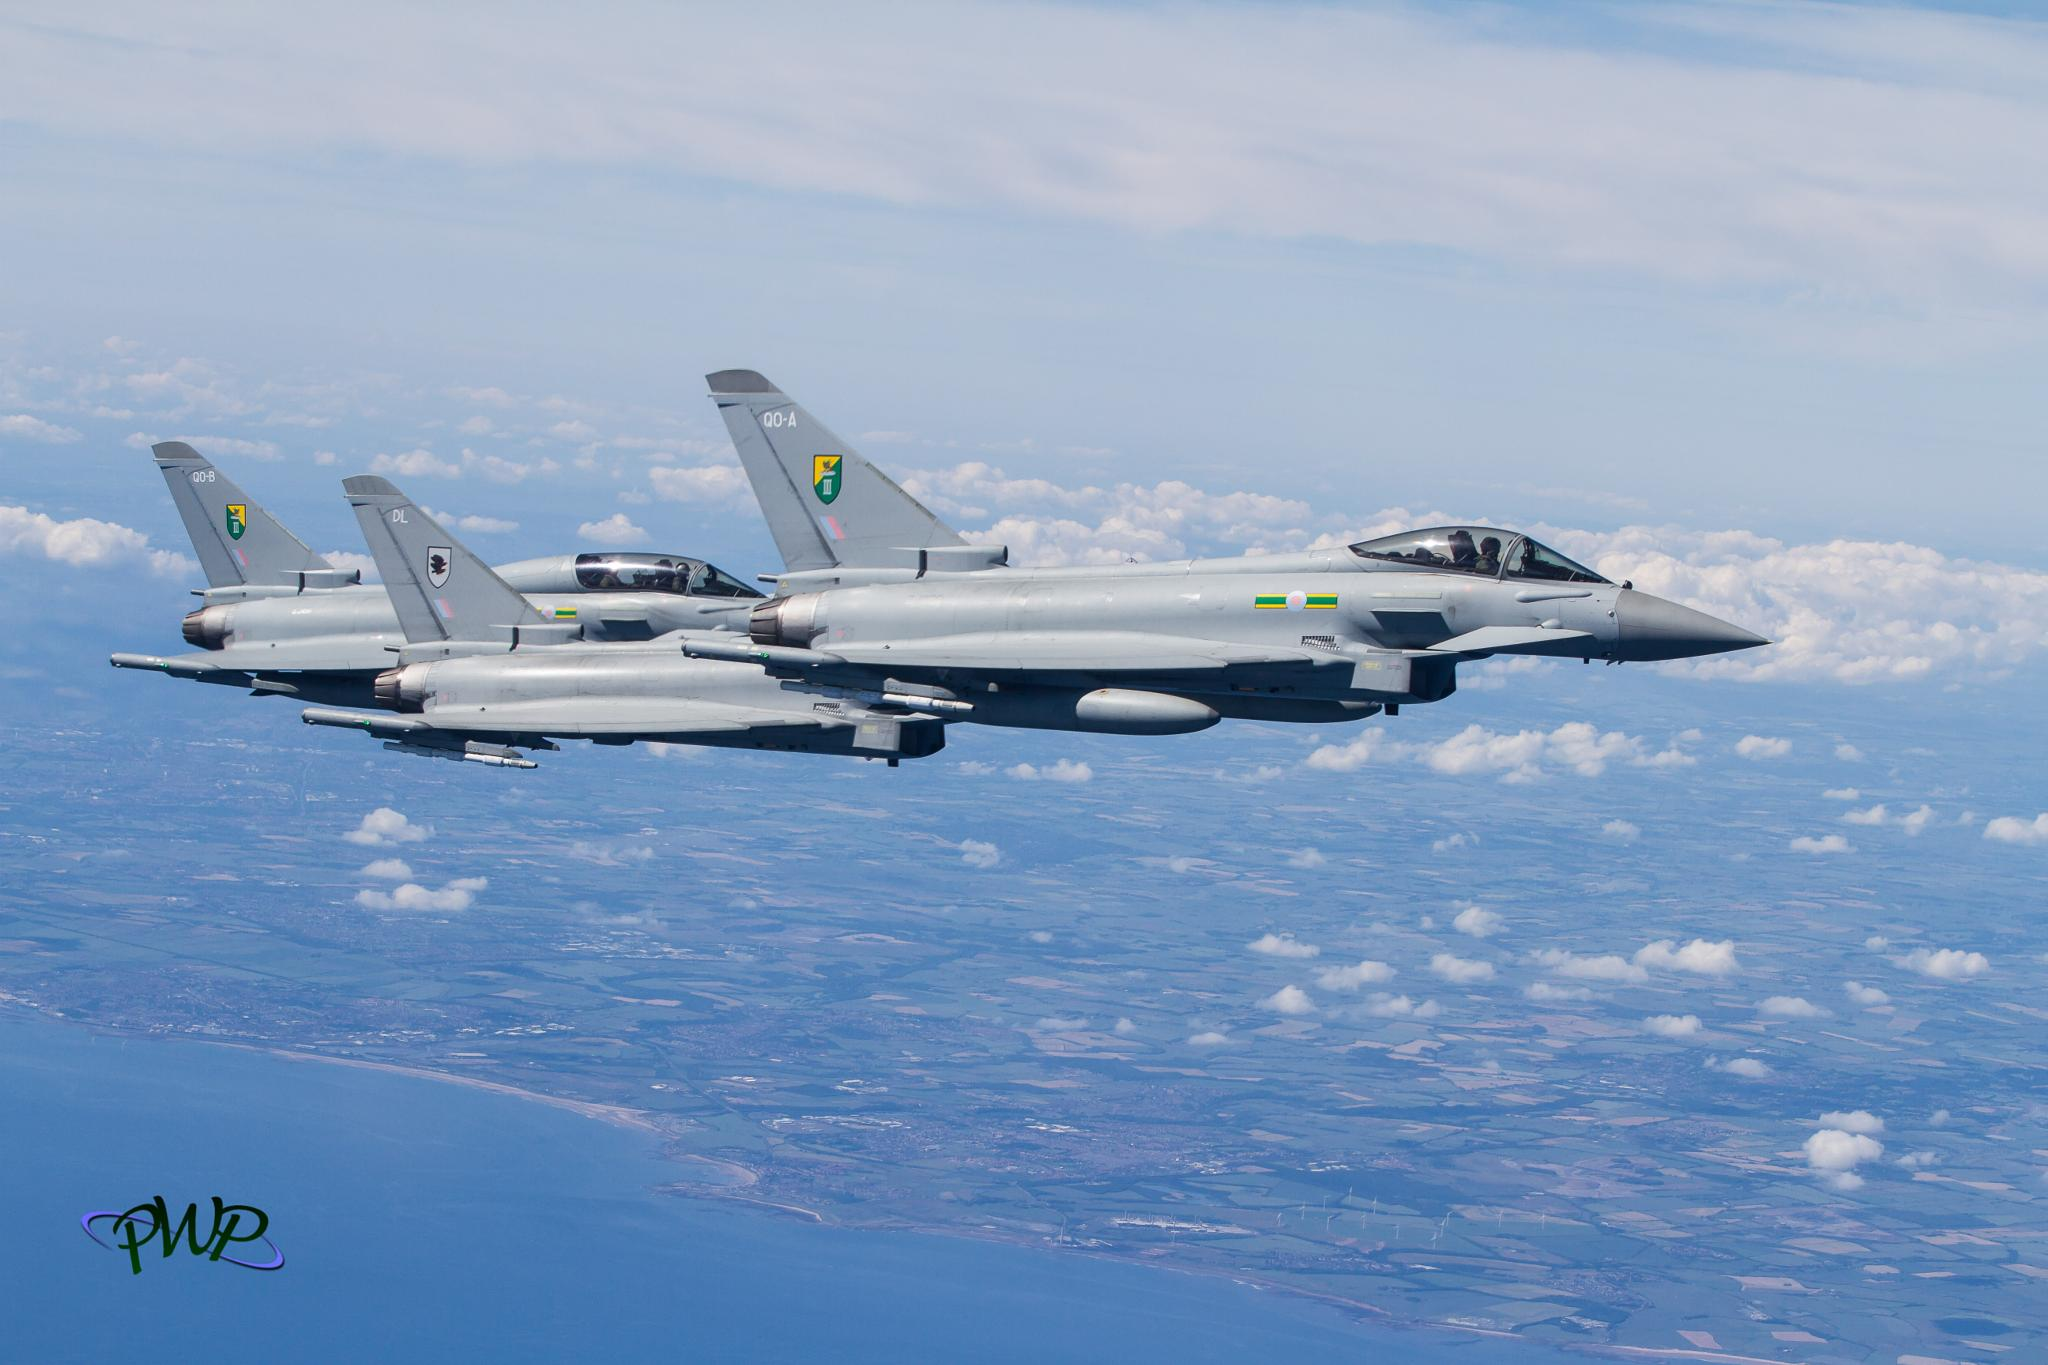 Typhoons arriving for fuel by peter.worth2